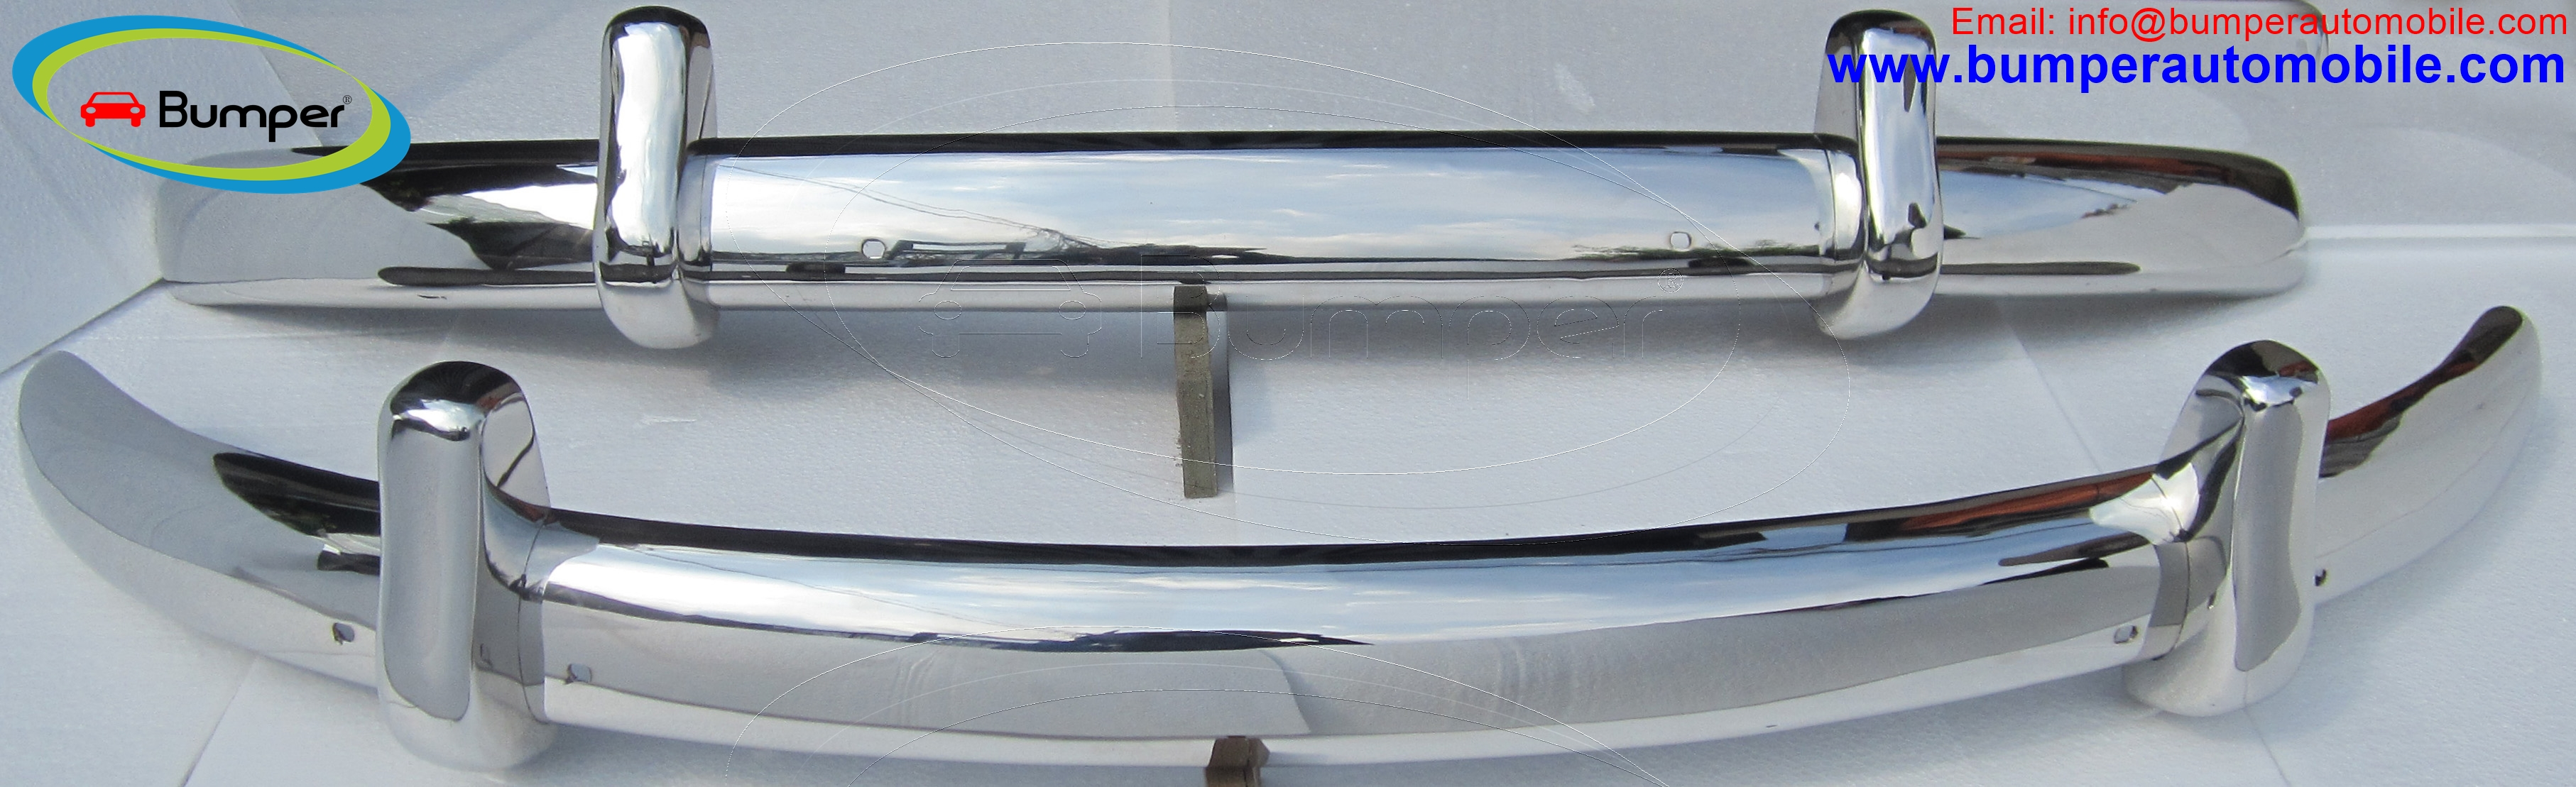 Volkswagen Beetle Euro style bumpers (1955-1972) polished stainless steel